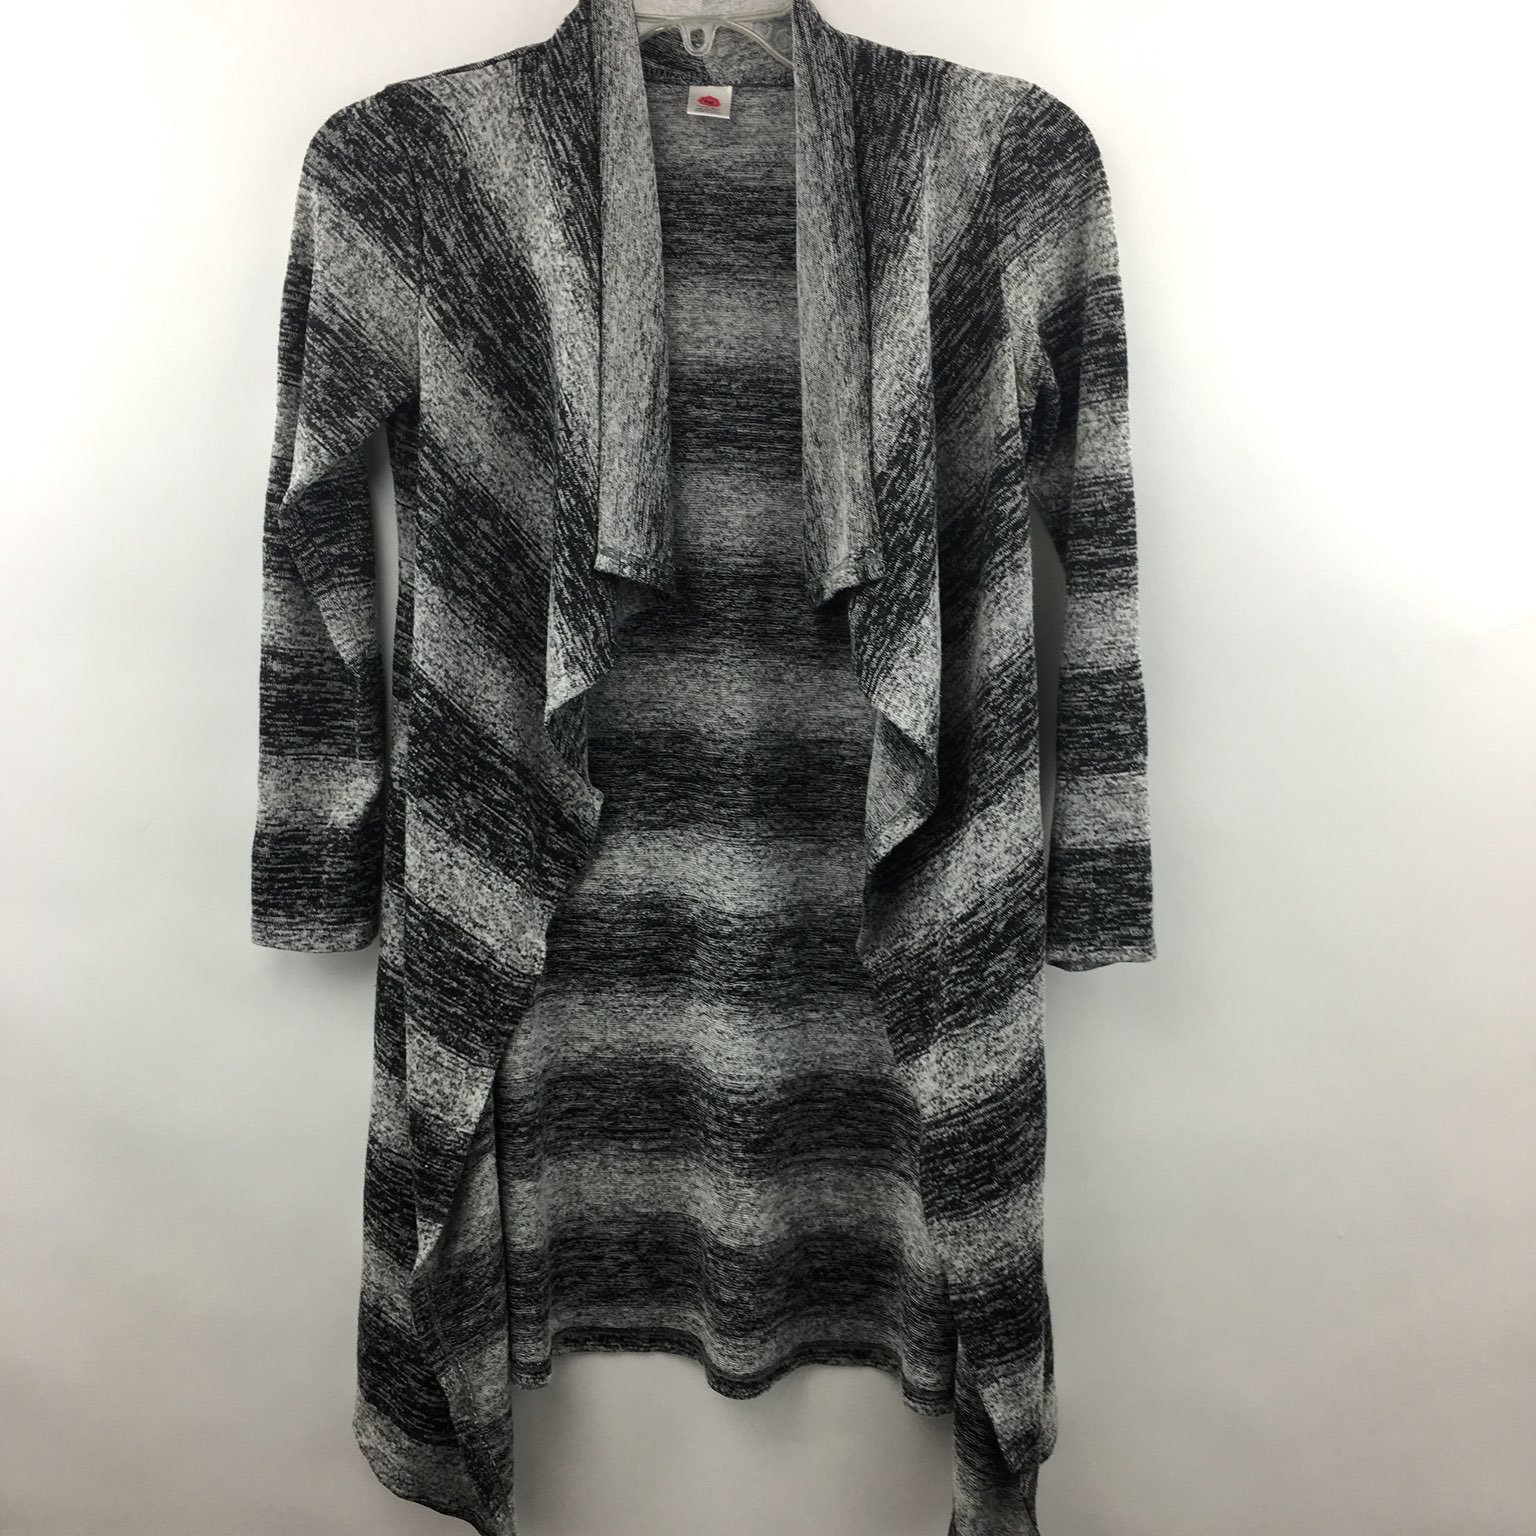 Open Front Waterfall Cardigan Girls M - Mercari: BUY & SELL THINGS ...